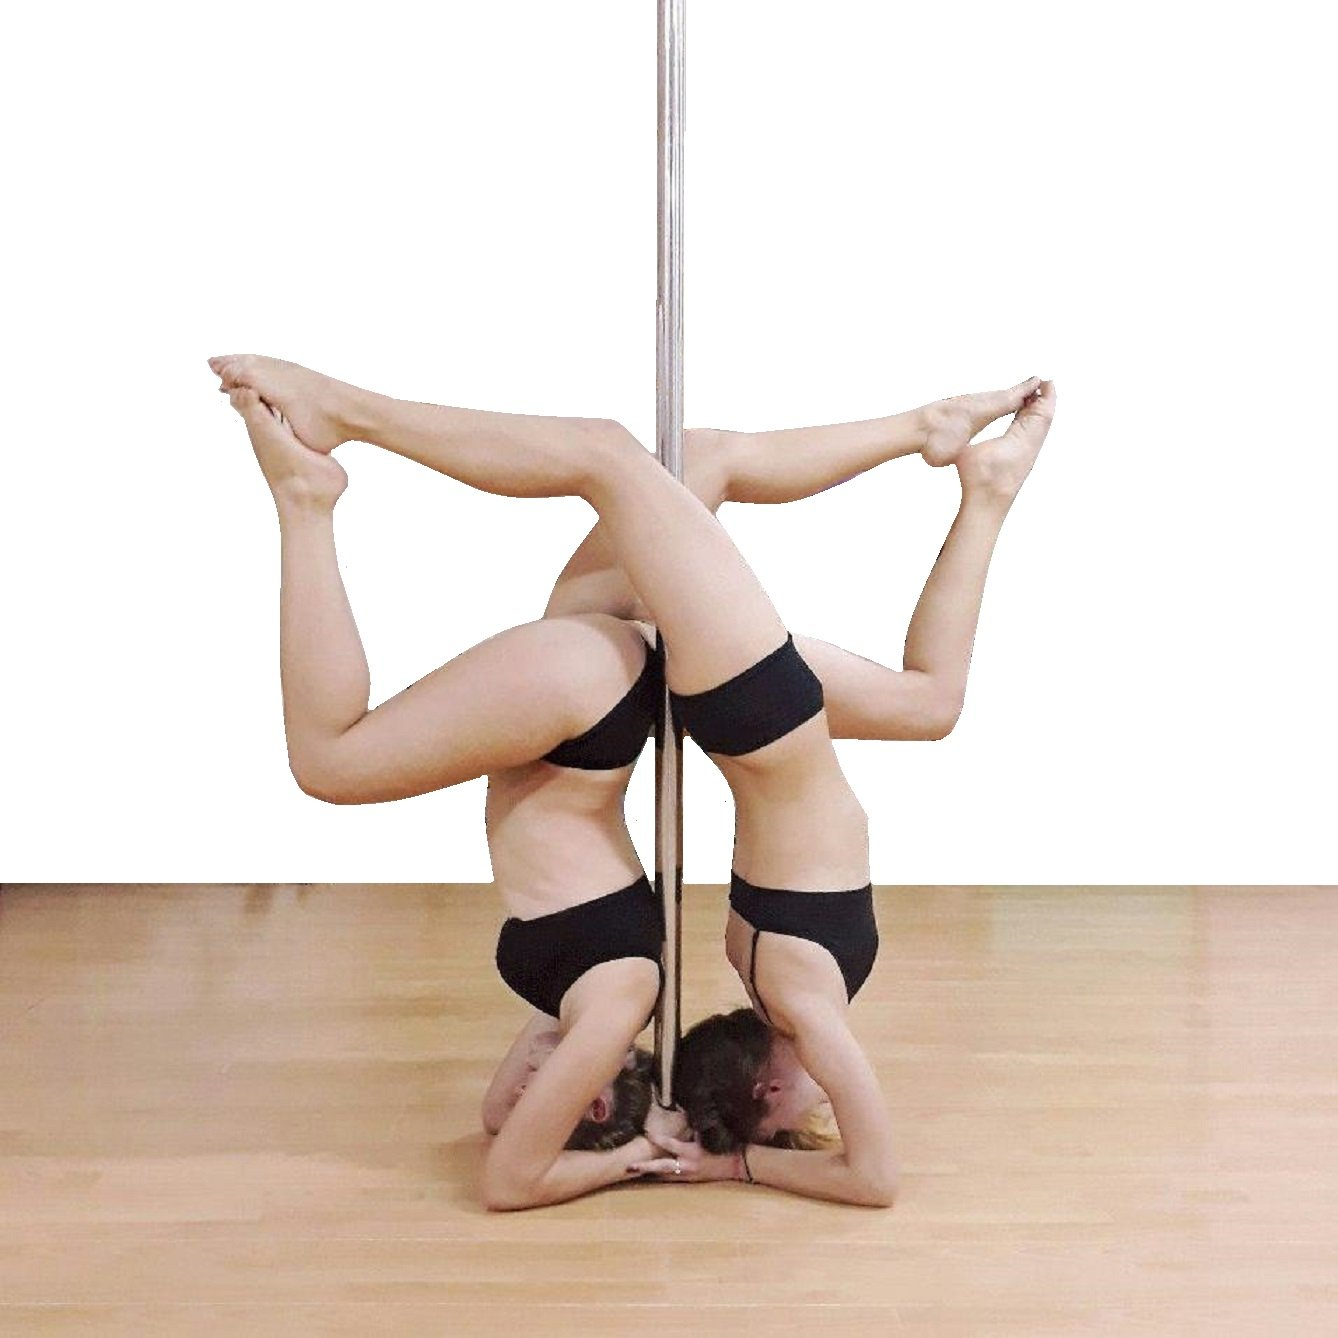 X-Dance 50mm Gold Chrome 9Ft Dance Pole Portable Fitness Exercise Exotic Strip and Spin + Bag by X-Dance (Image #3)